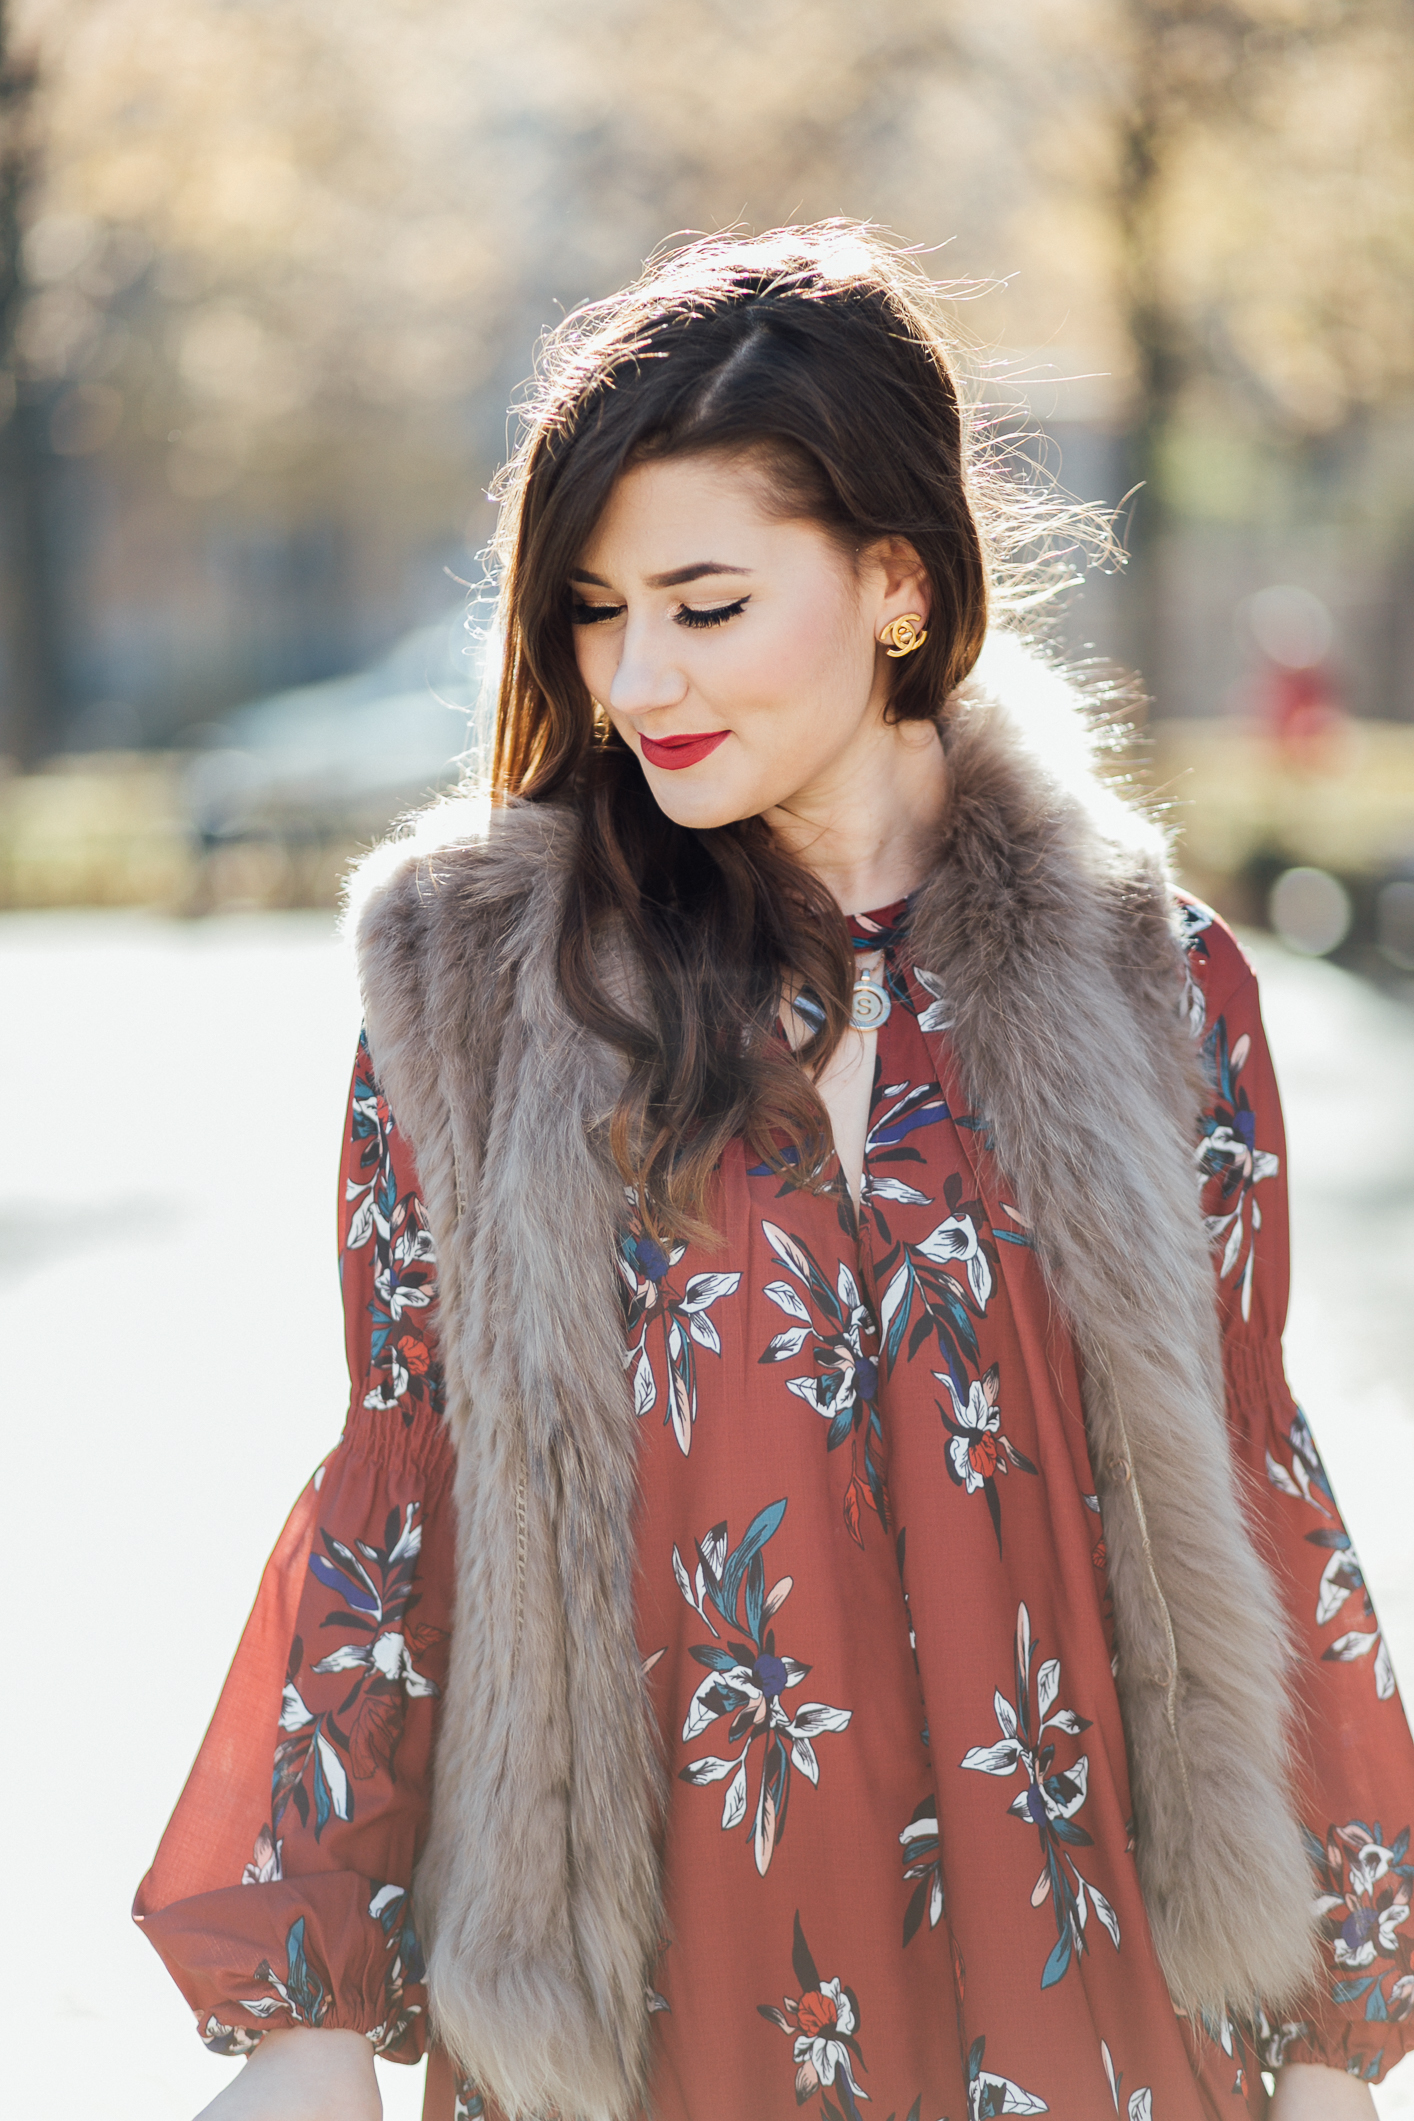 Beauty-Blogger-München-Sara-Bow-Herbst-Kleid-Outfit-Fellweste